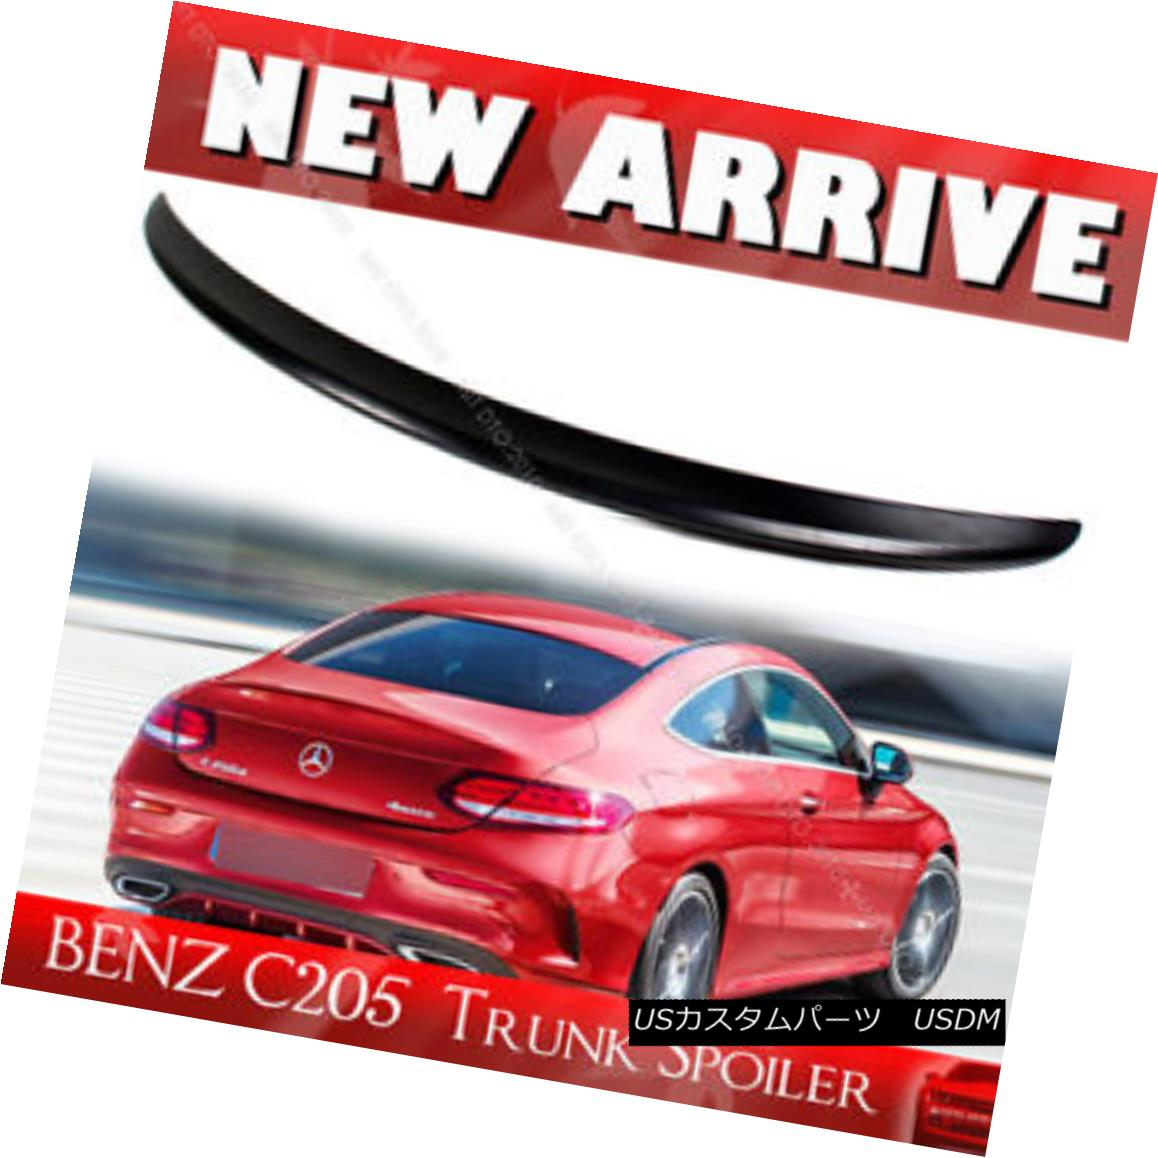 エアロパーツ 15-17 Painted Color BENZ C-Class C205 2DR Boot Trunk Spoiler C180 15-17塗装色BENZ CクラスC205 2DRブートトランク・スポイラーC180